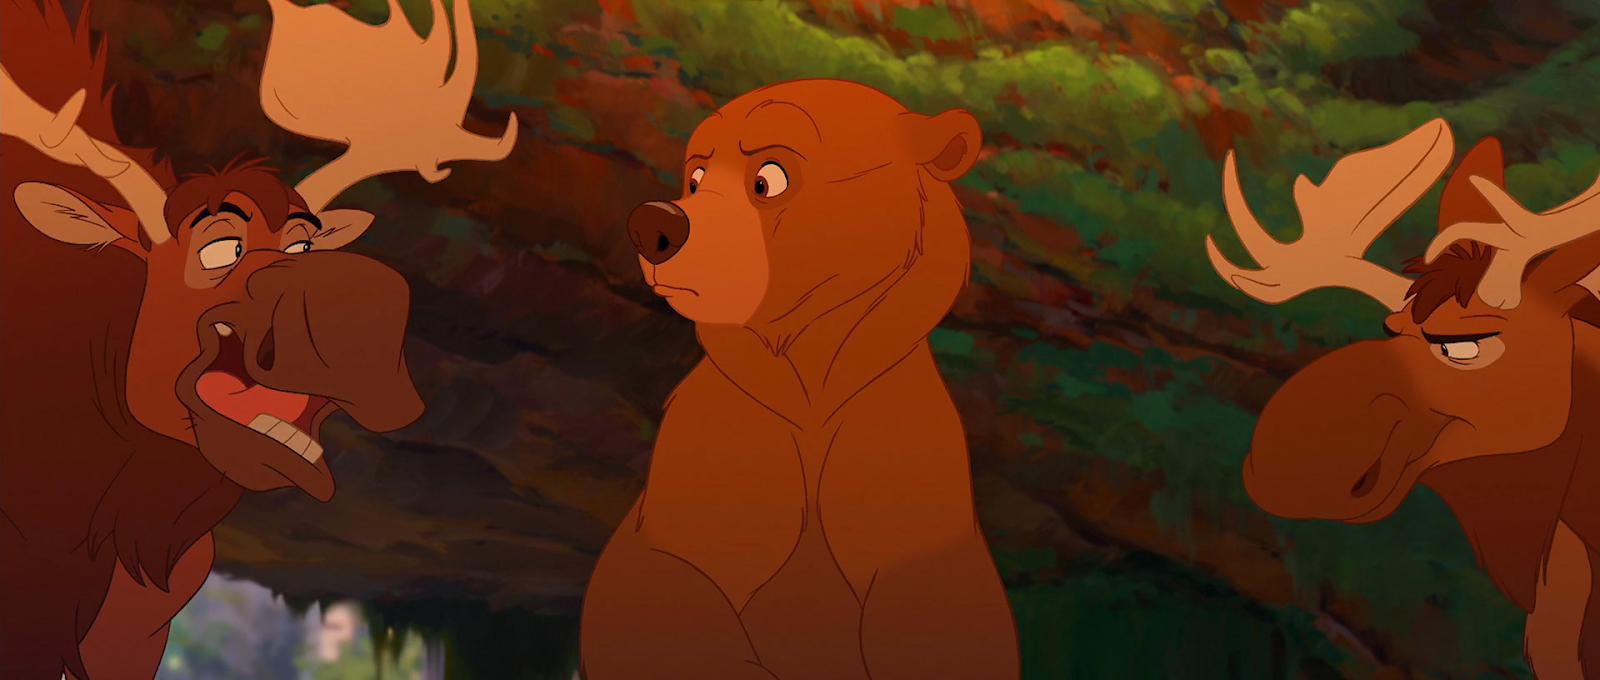 Finding The Wrong Words For Walt Disney S Animated Fifty Part